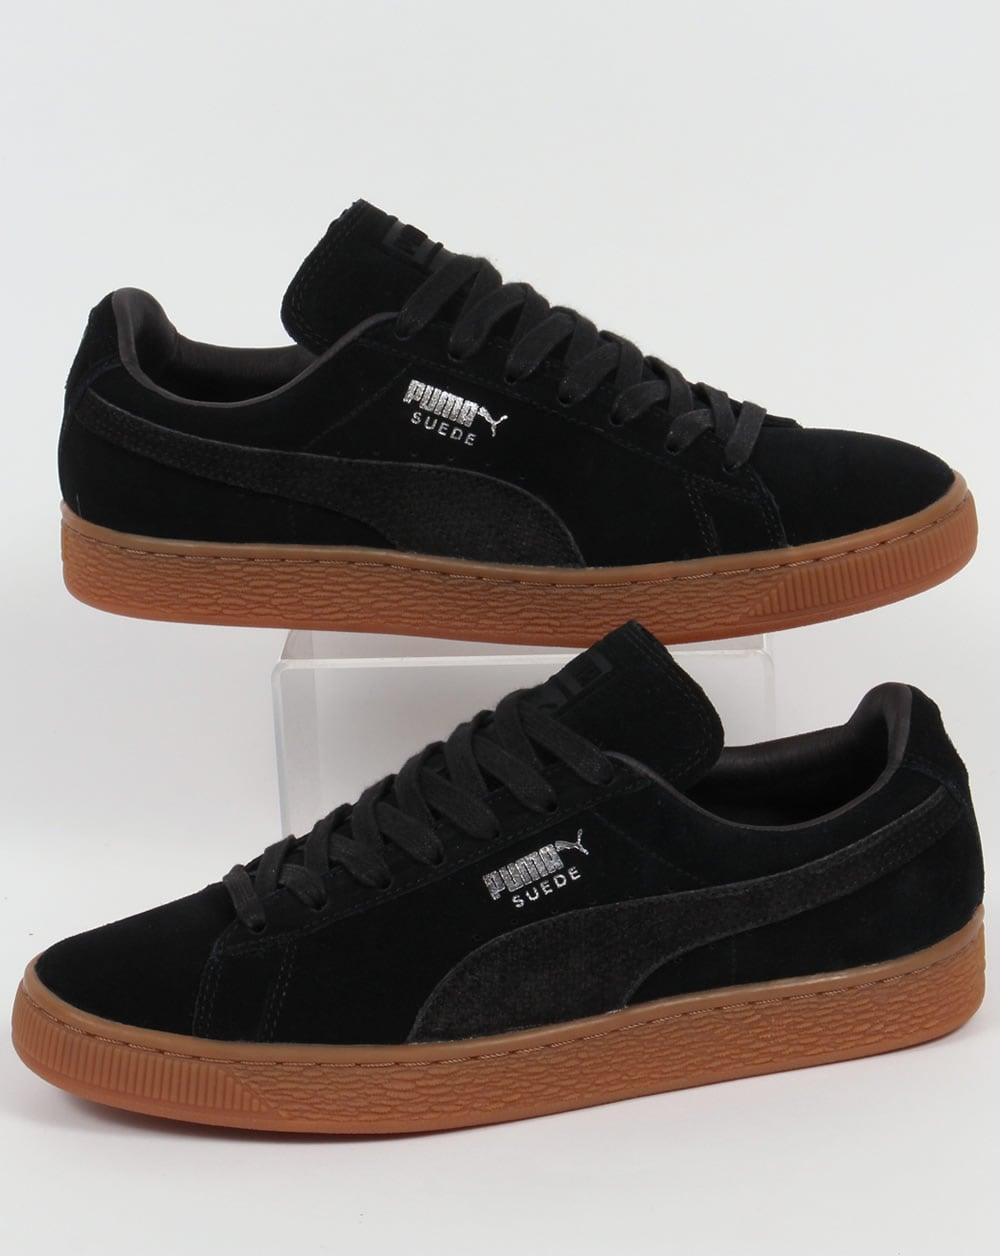 puma suede citi trainers black shoes sneakers classic mens. Black Bedroom Furniture Sets. Home Design Ideas